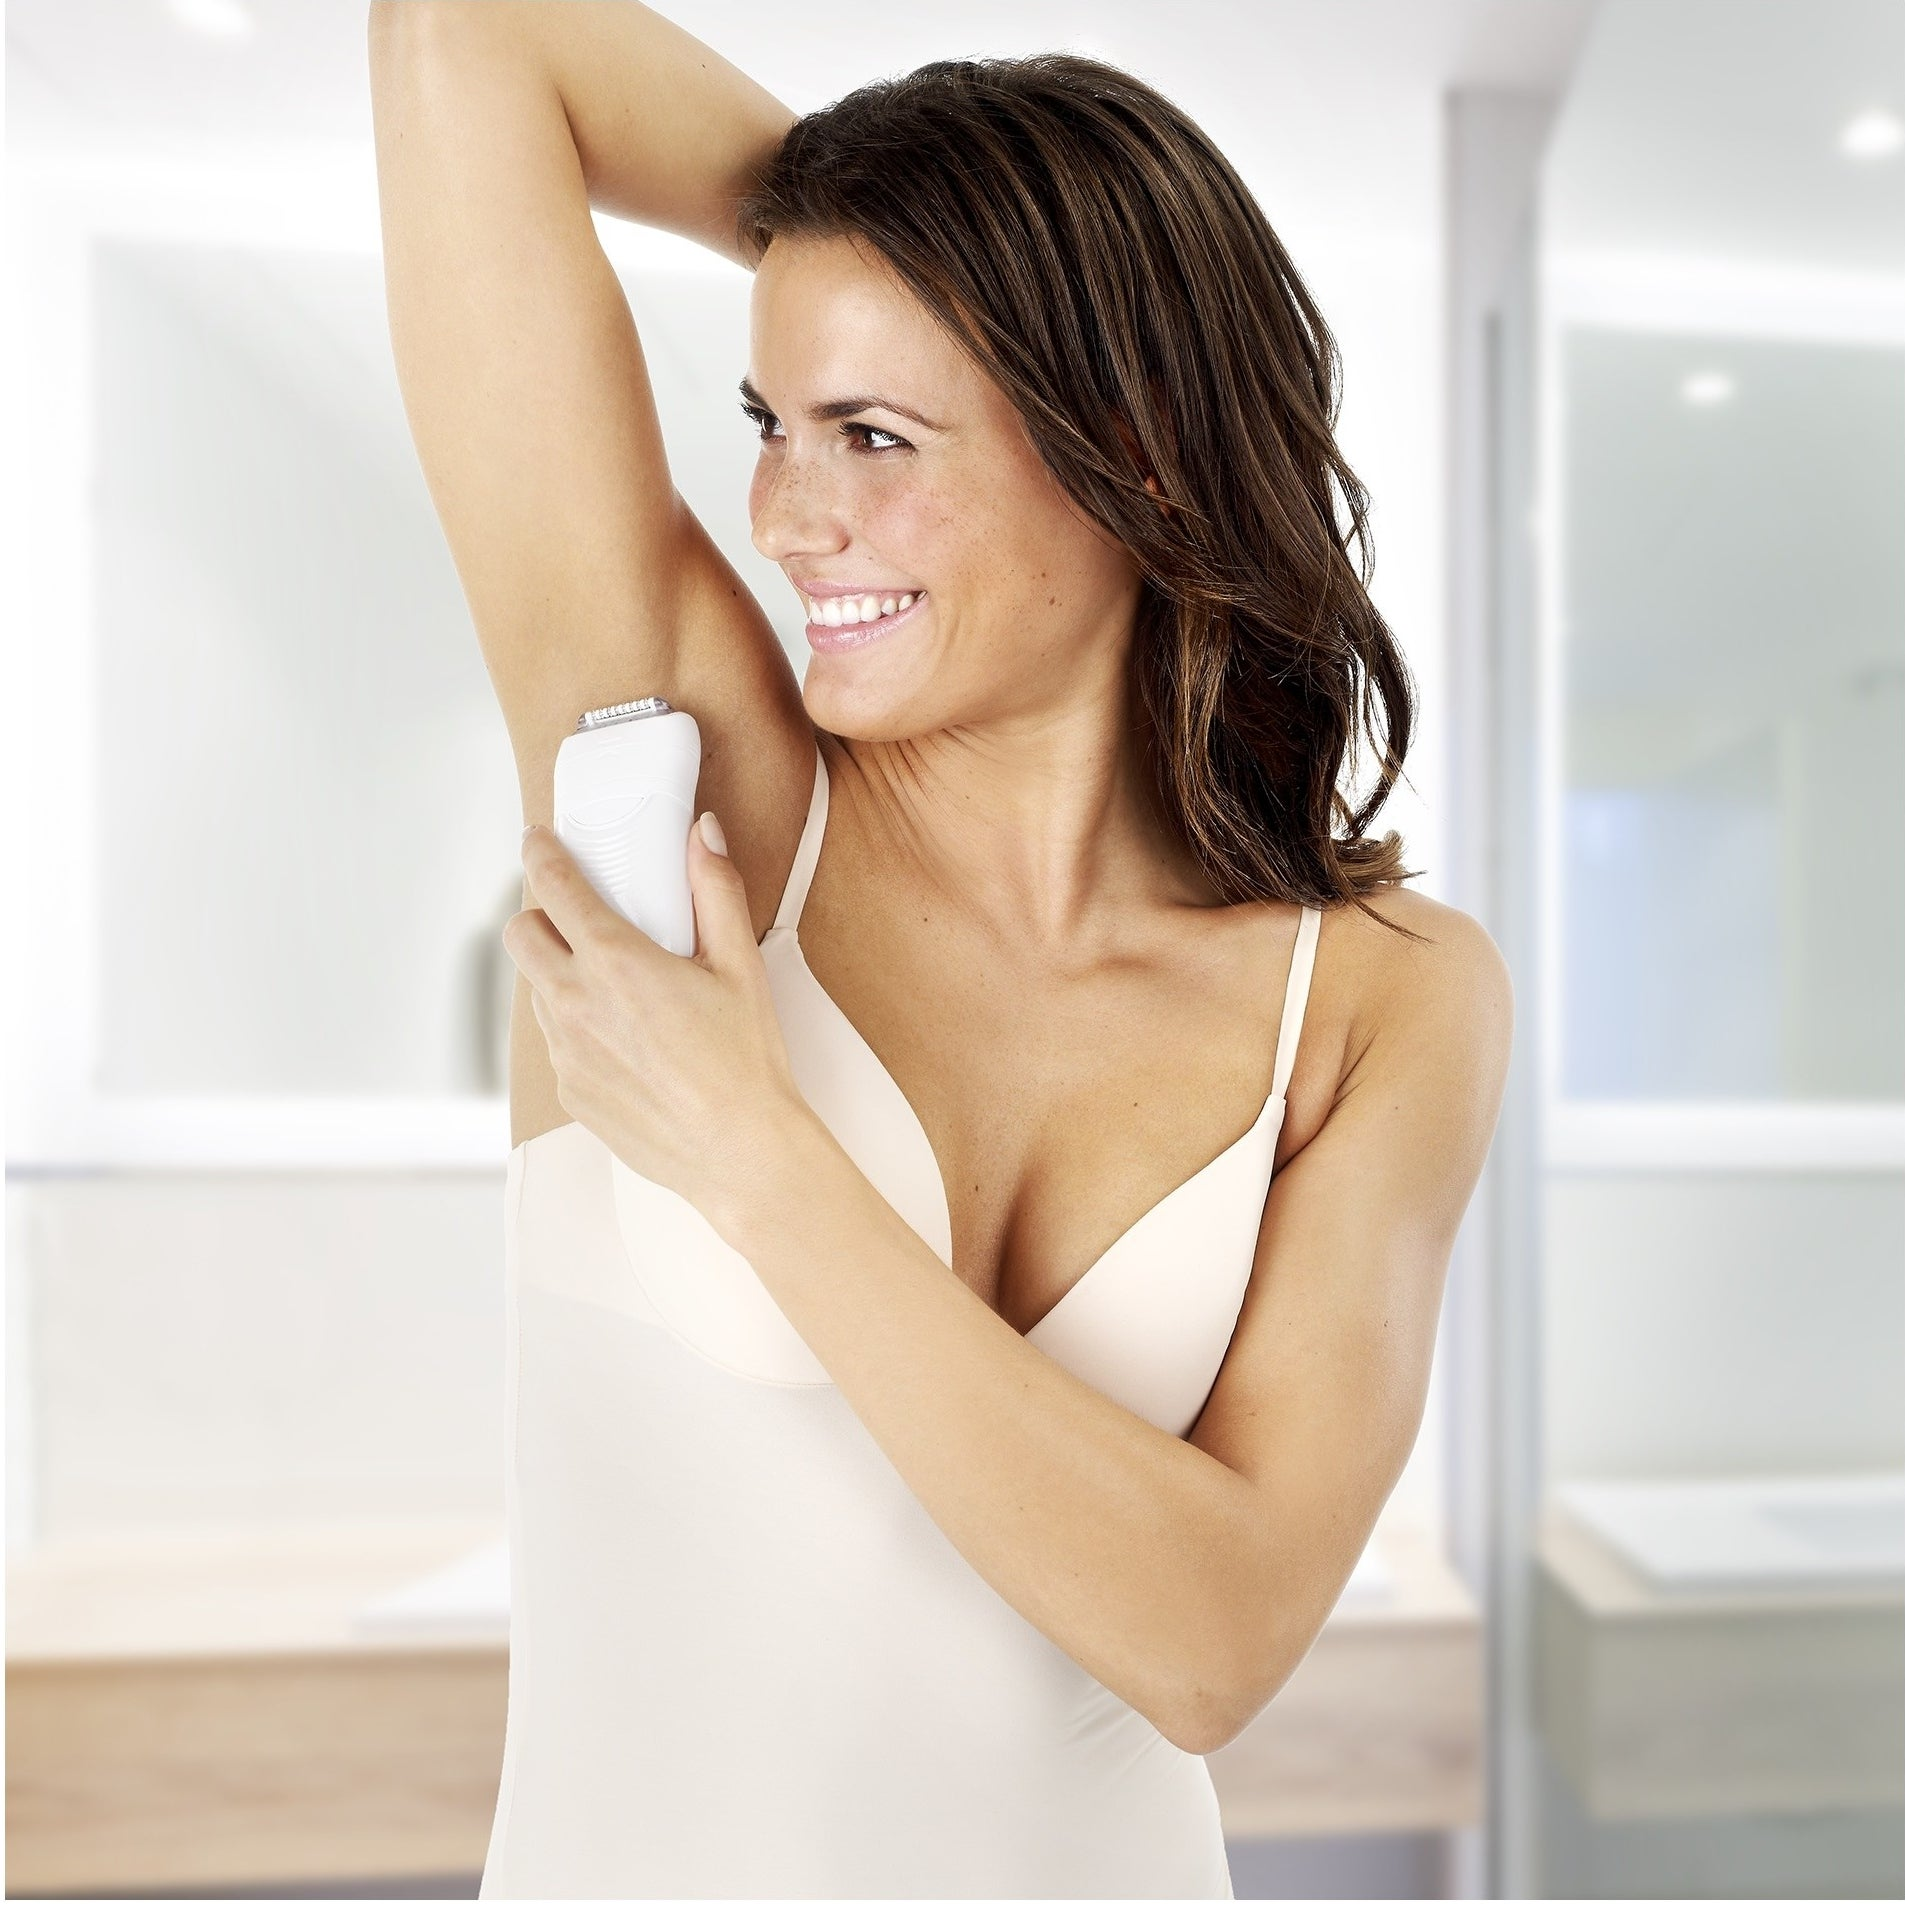 A model using the epilator on the underarms